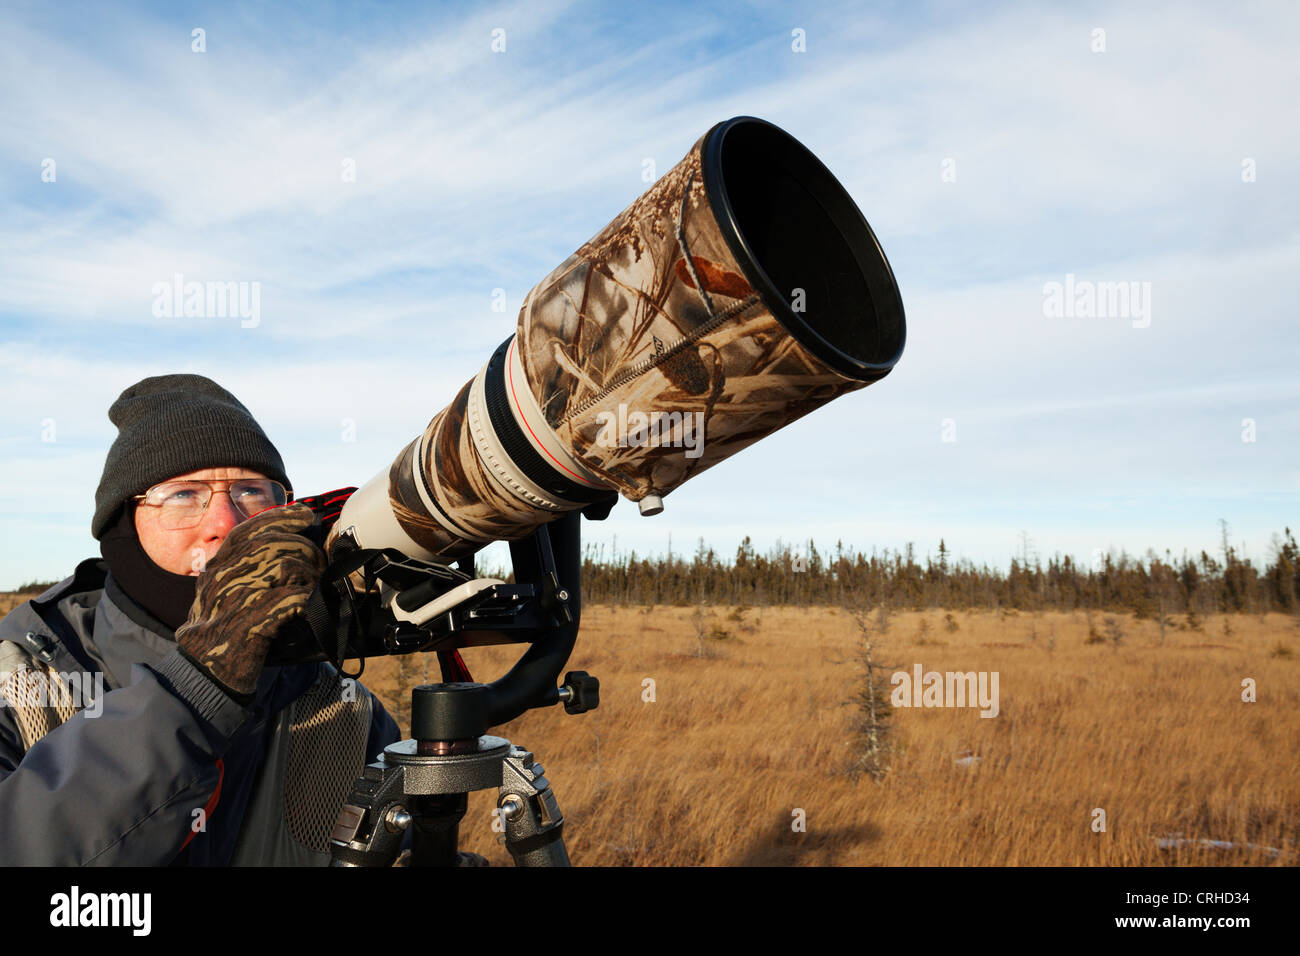 A wildlife nature photographer watching for birds. - Stock Image